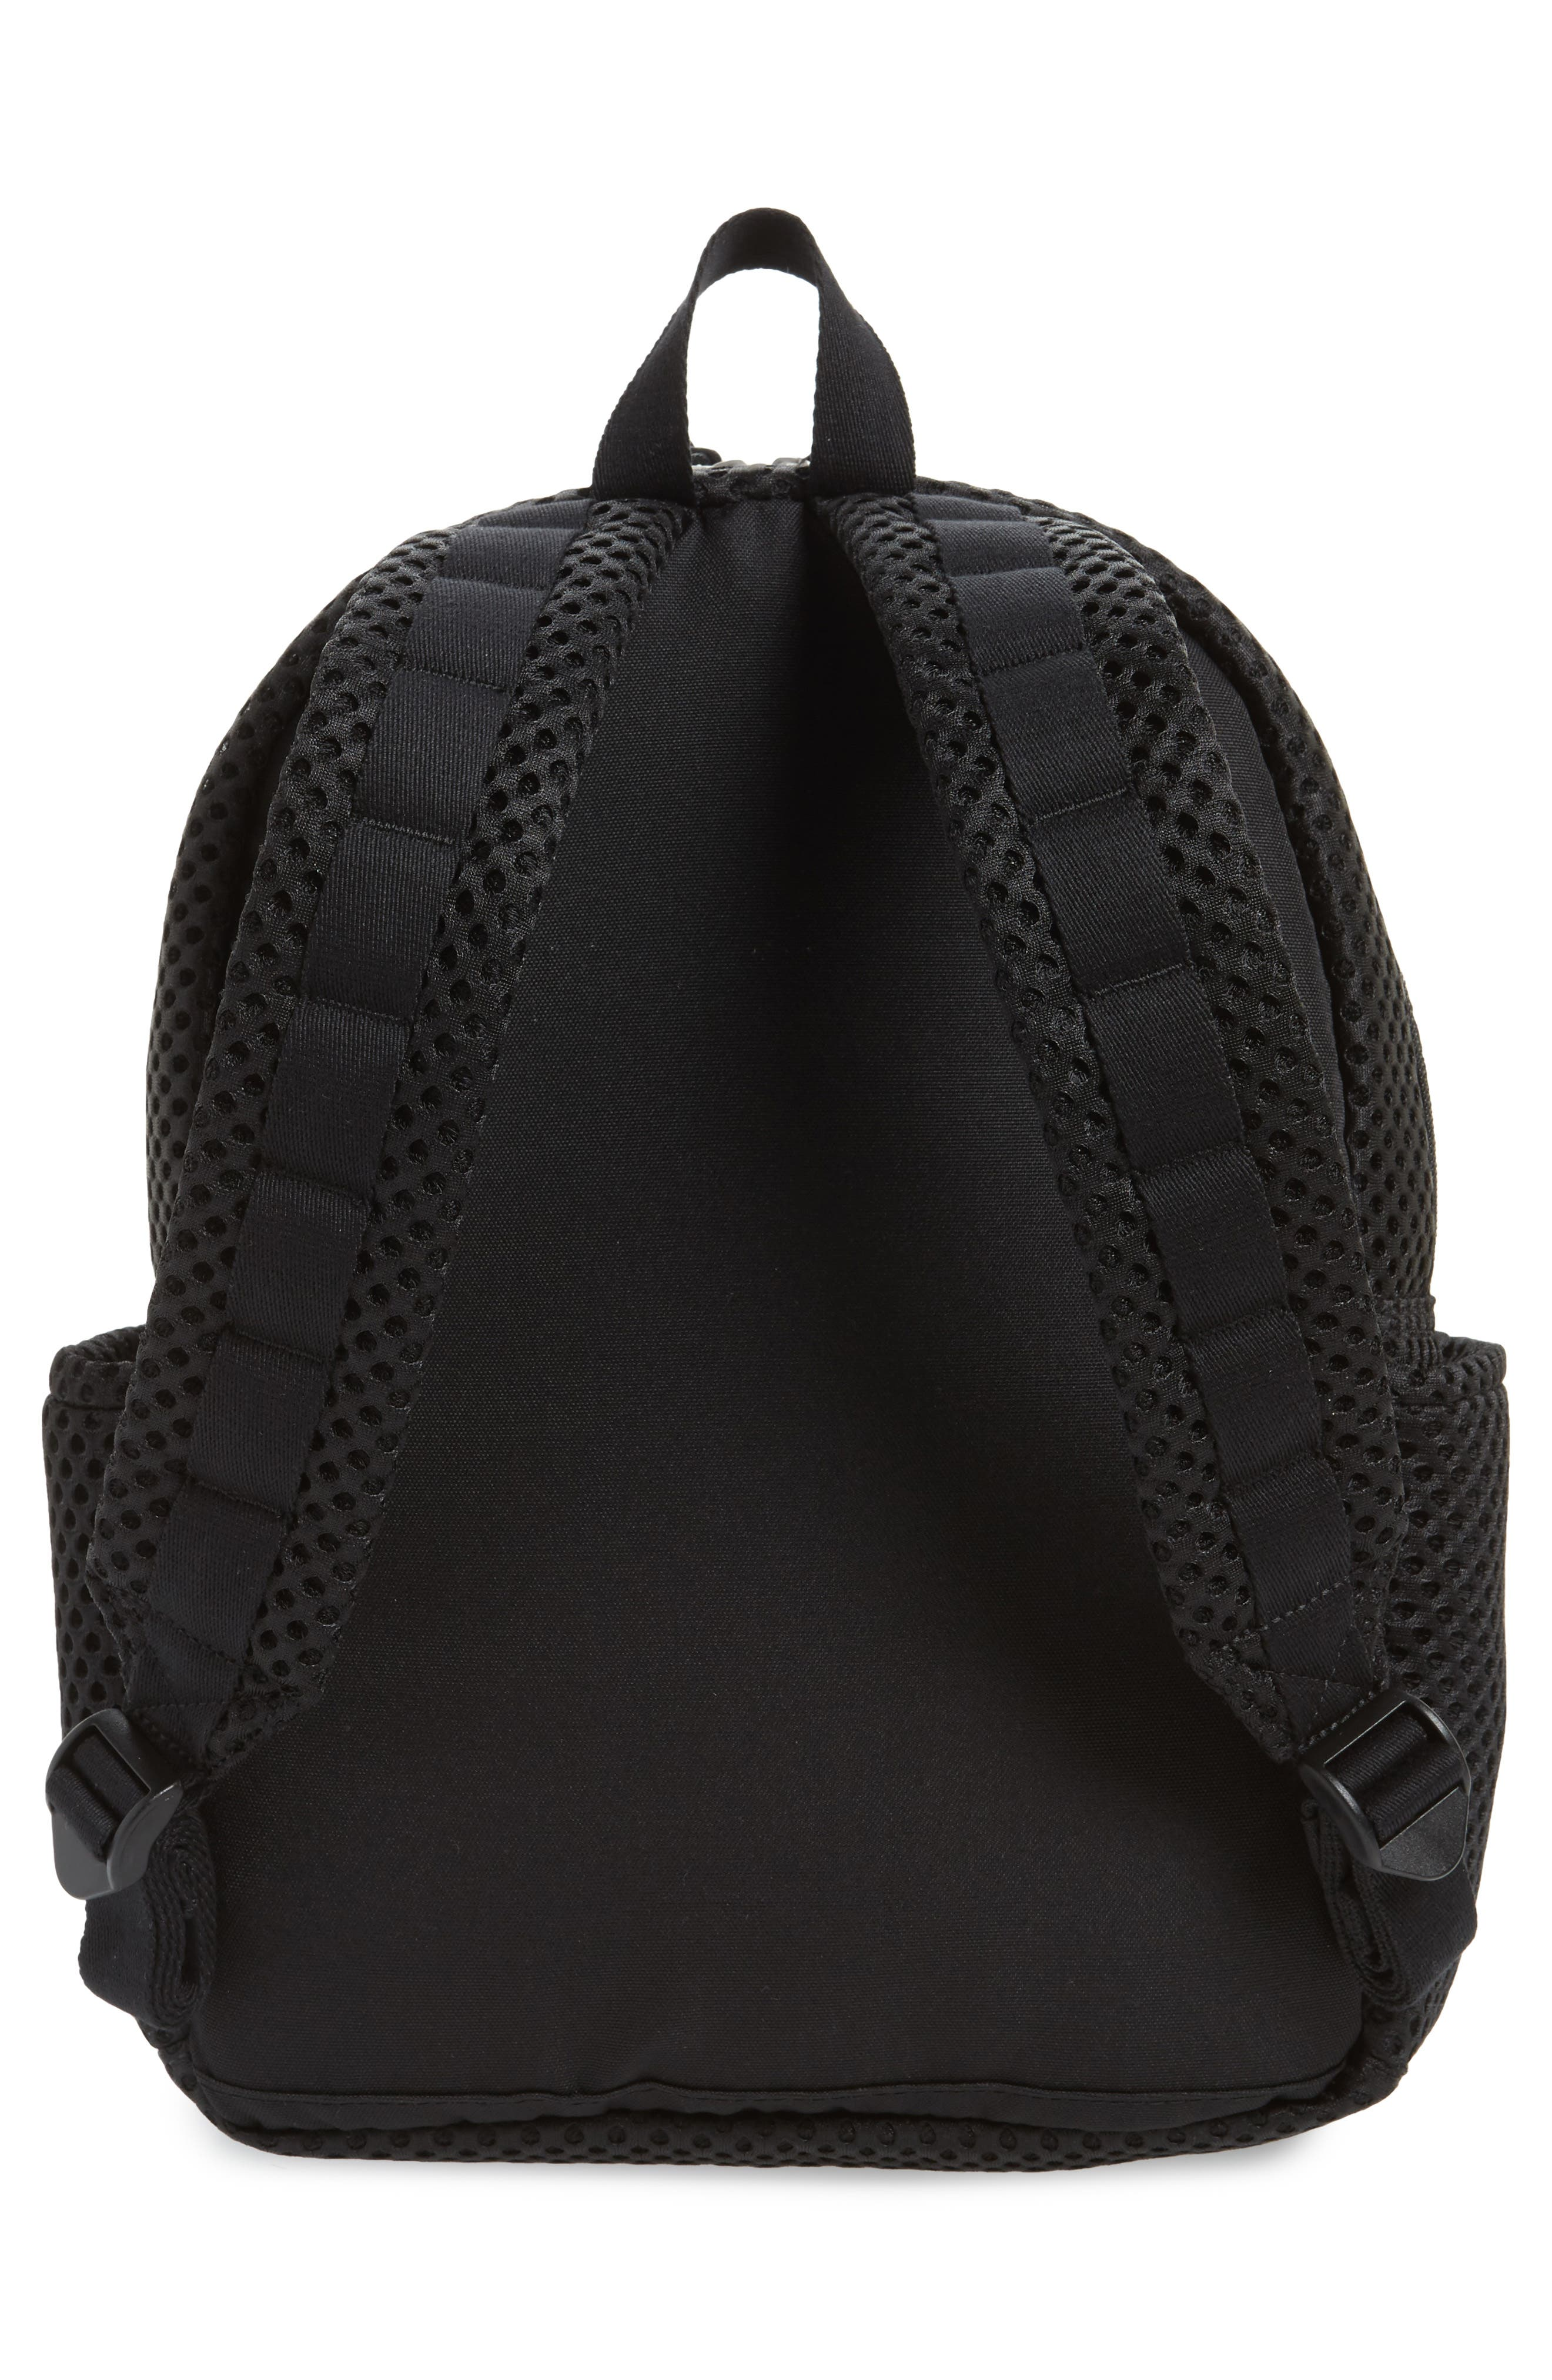 Lacrosse Mesh Kane Backpack,                             Alternate thumbnail 3, color,                             001